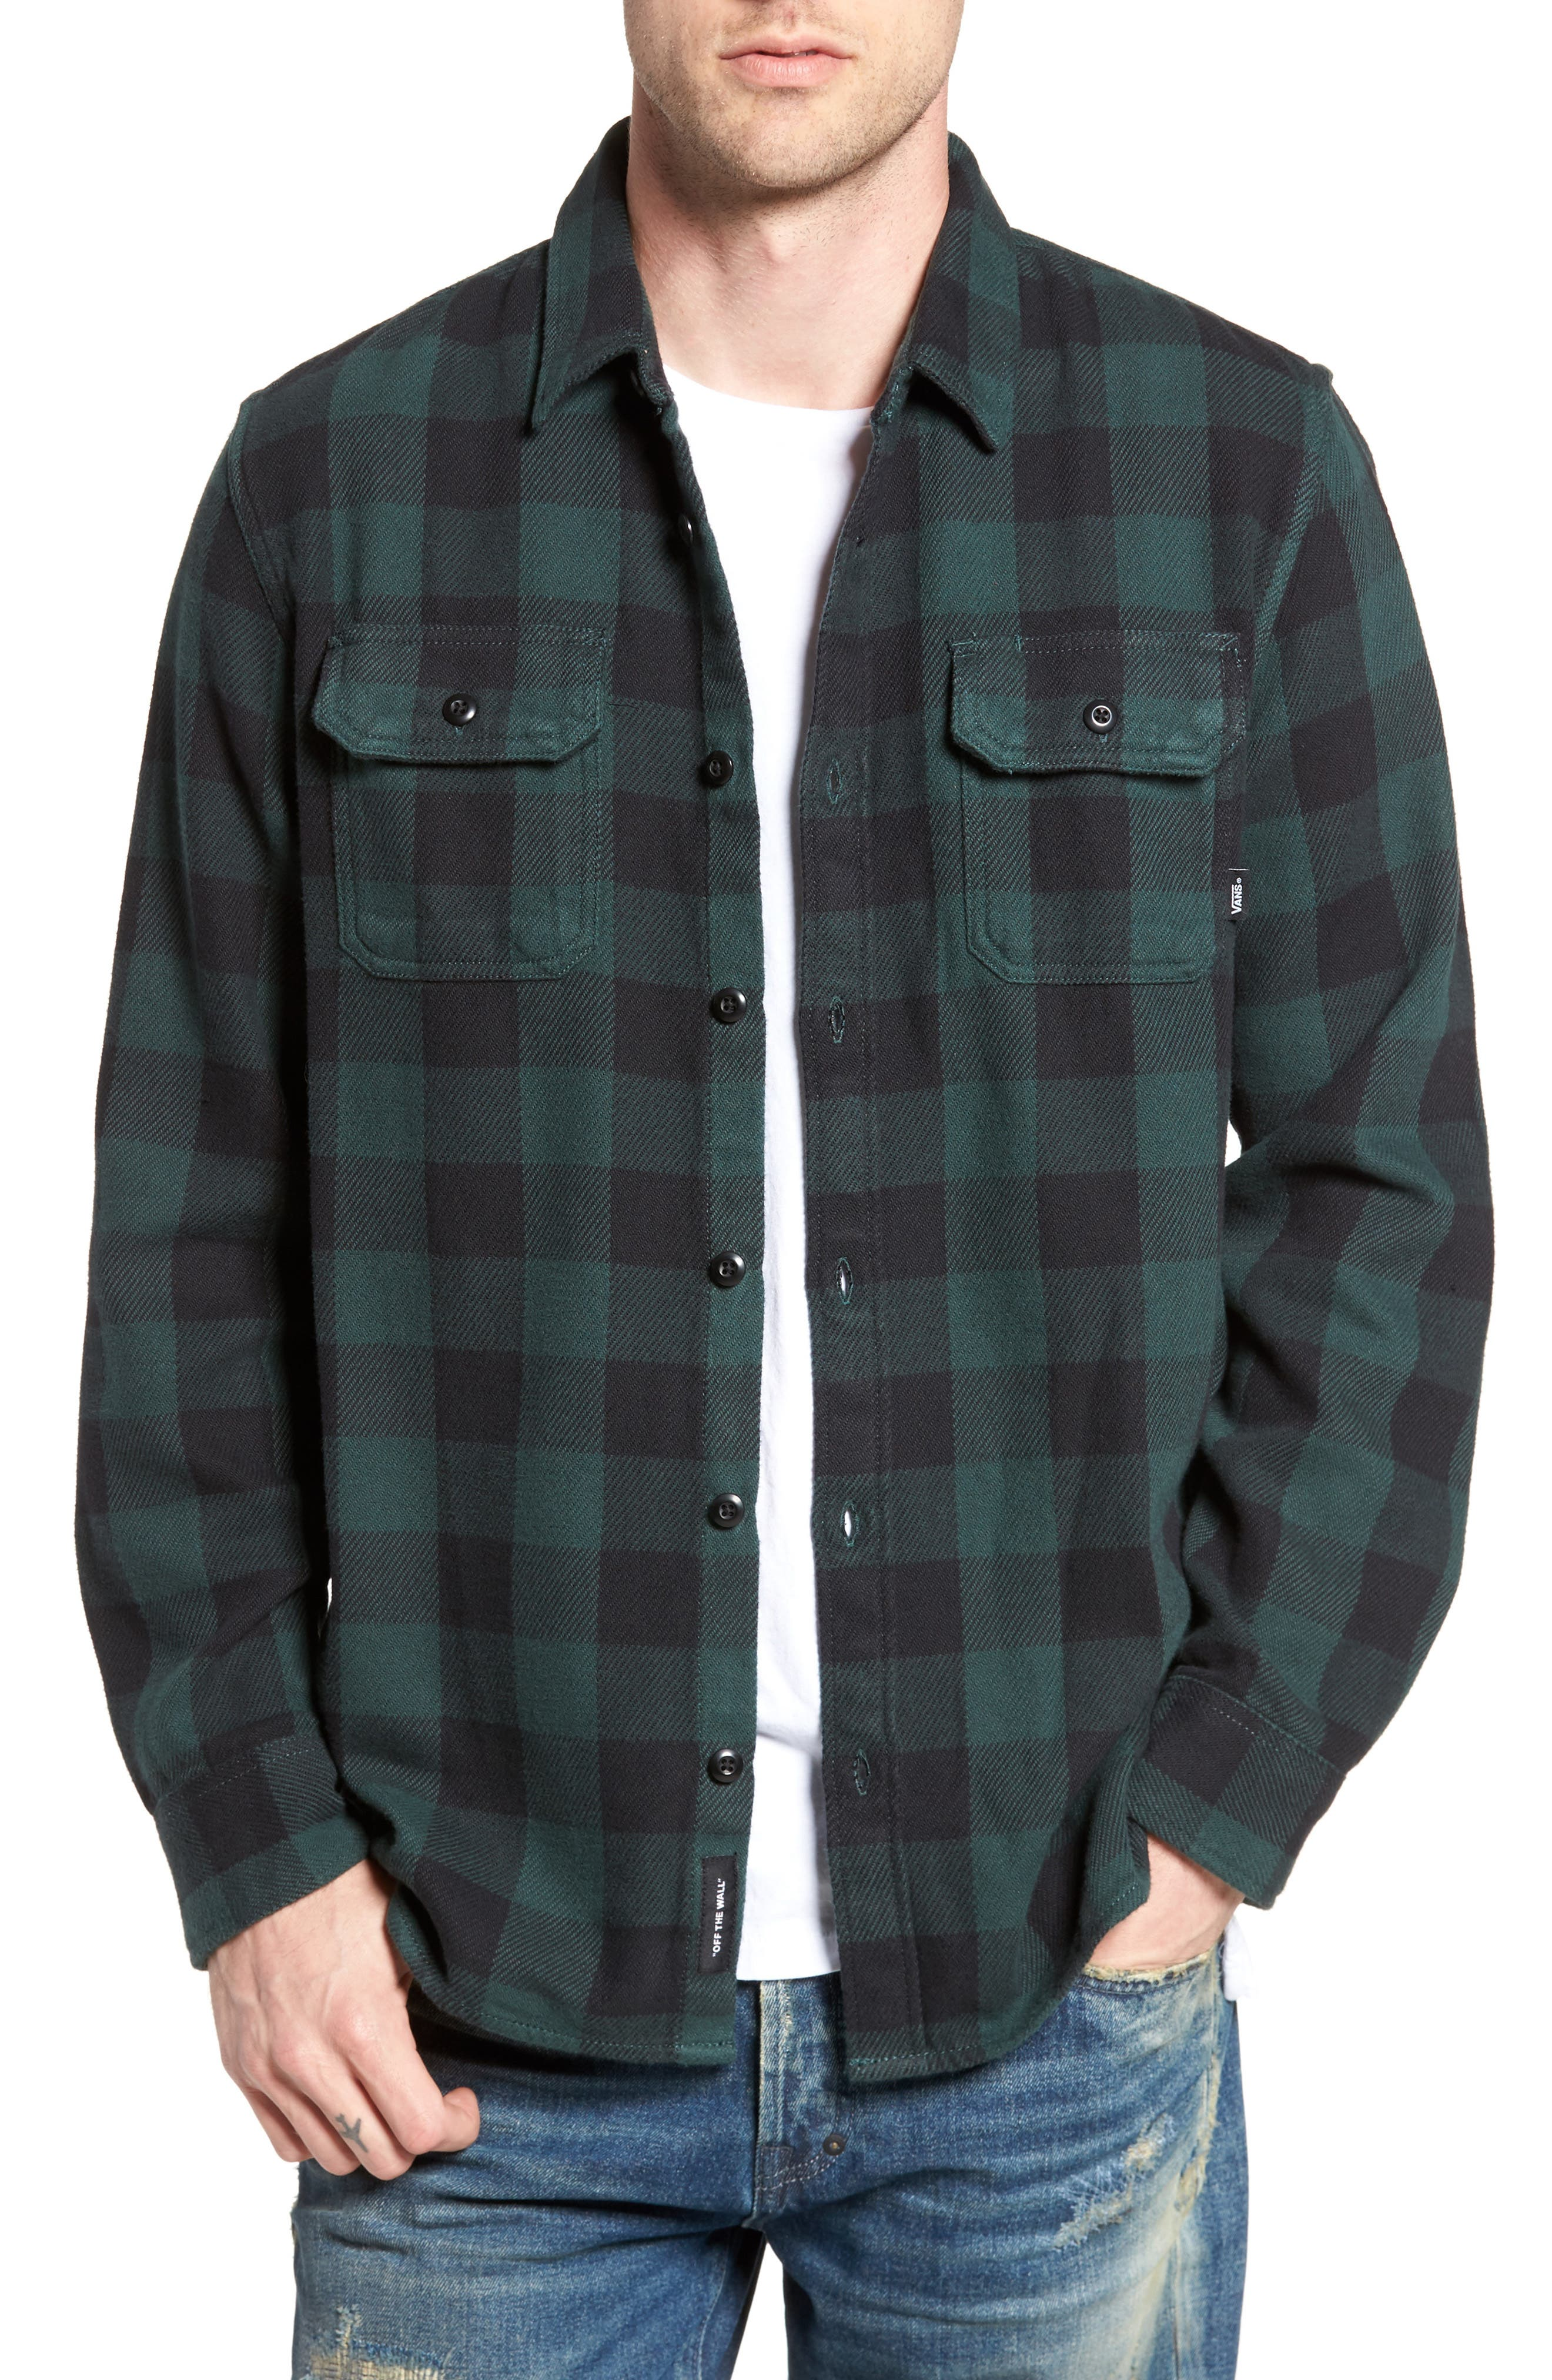 Wisner Plaid Shirt,                             Main thumbnail 1, color,                             001